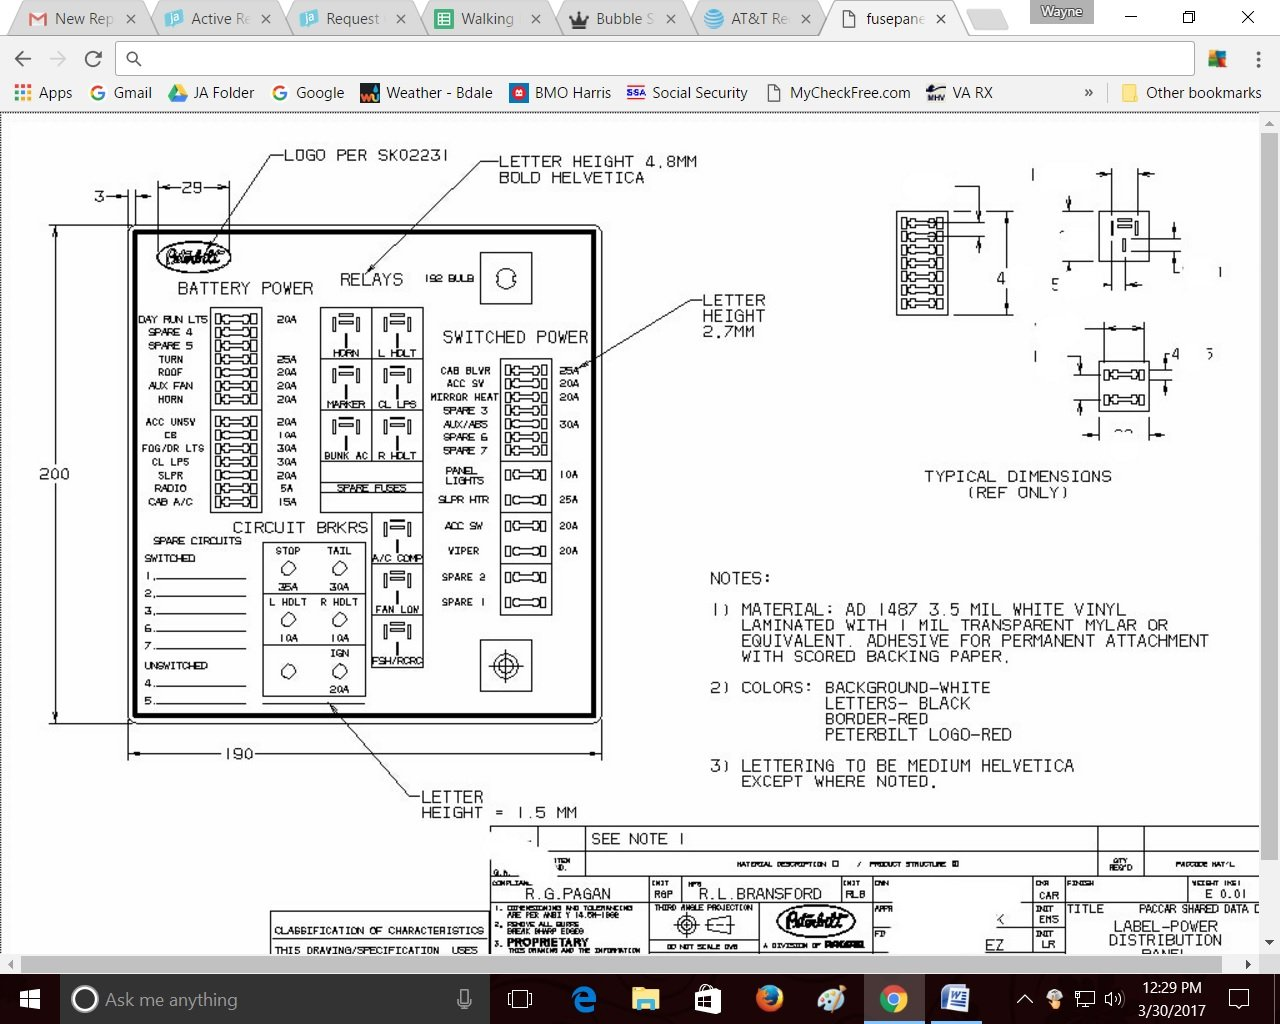 2007 Peterbilt 387 Fuse Box Diagram | computing-negotiat Use Wiring Diagram  - computing-negotiat.csrsolution.eucsrsolution.eu